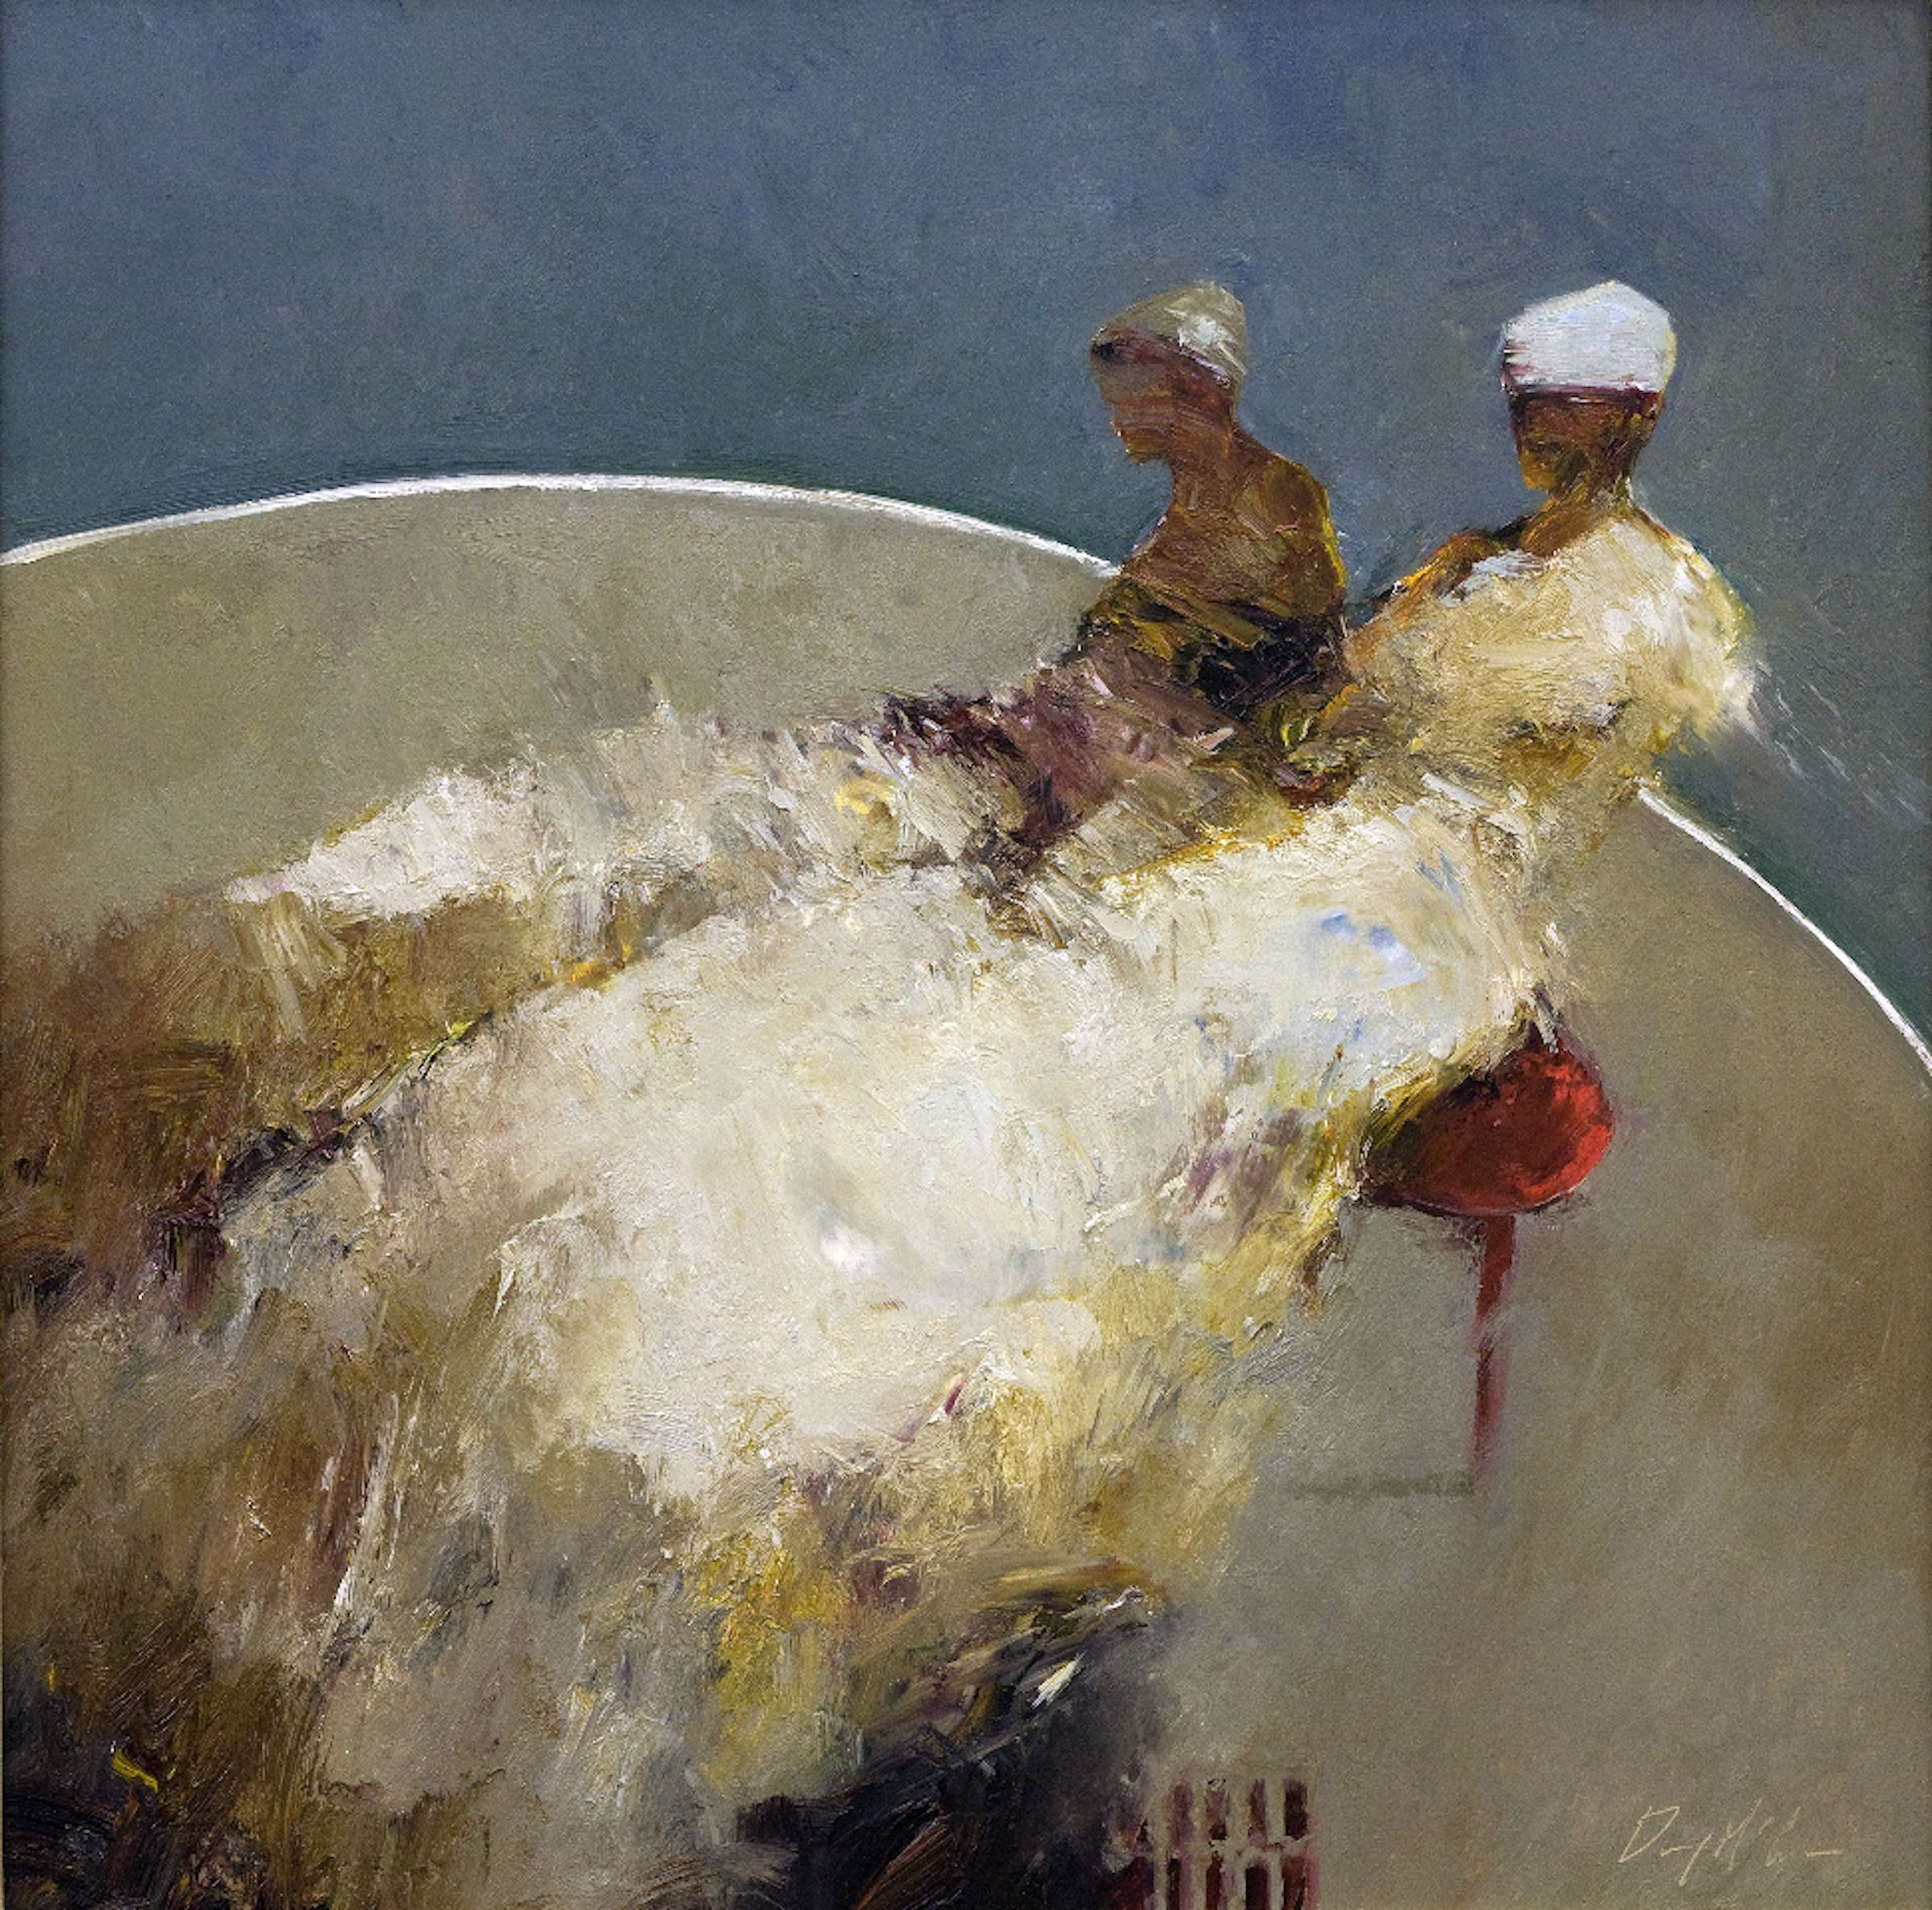 Danny McCaw, 'Red Chair', 24 x 24, Oil on Panel